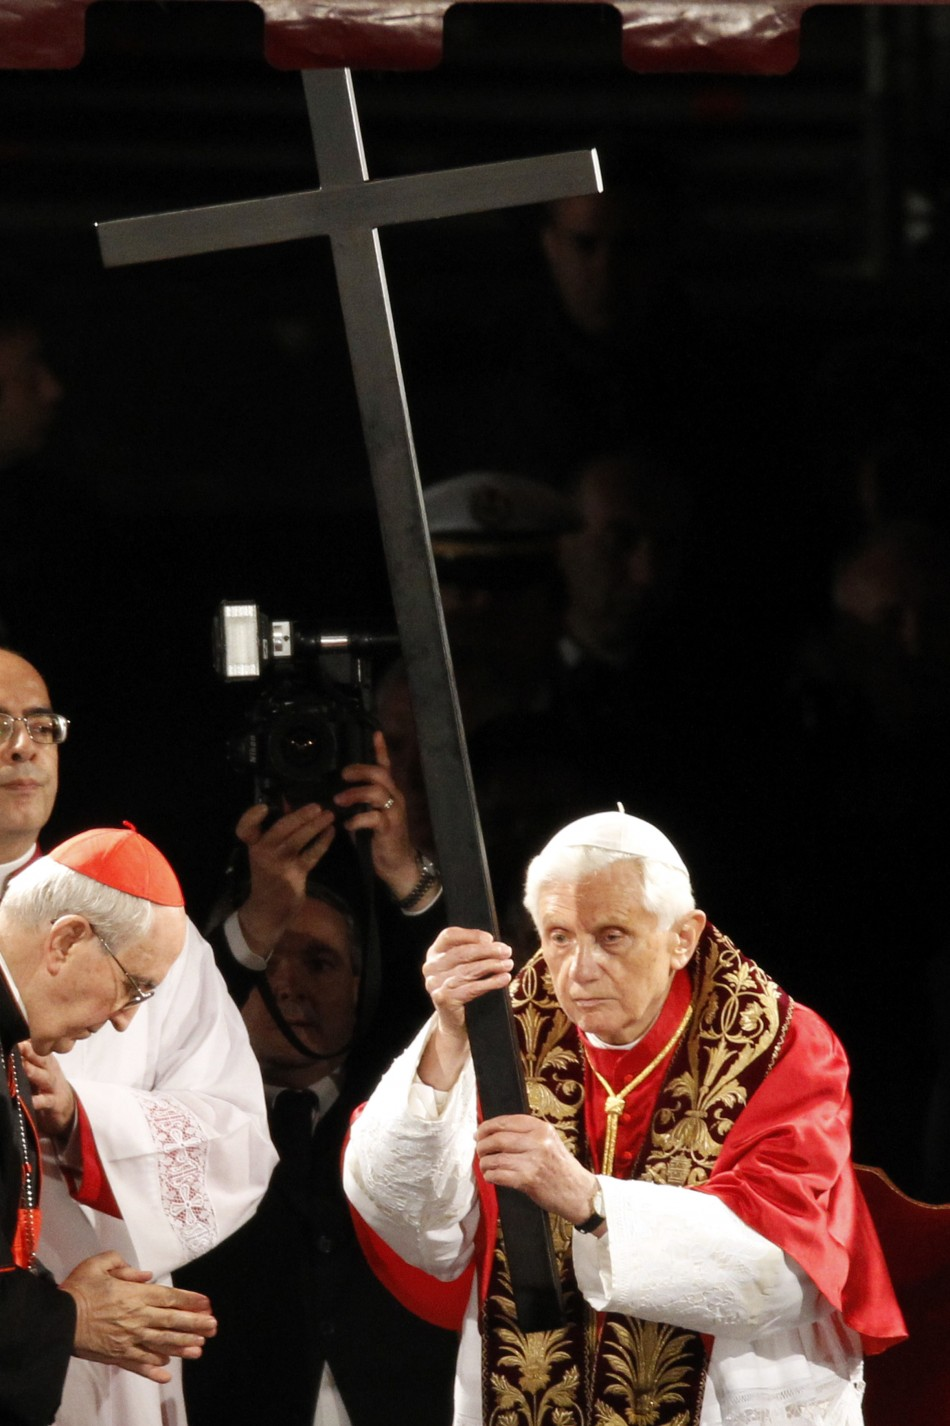 Pope Benedict XVI holds the cross as he leads the Via Crucis (Way of the Cross) procession at the Colosseum in downtown Rome